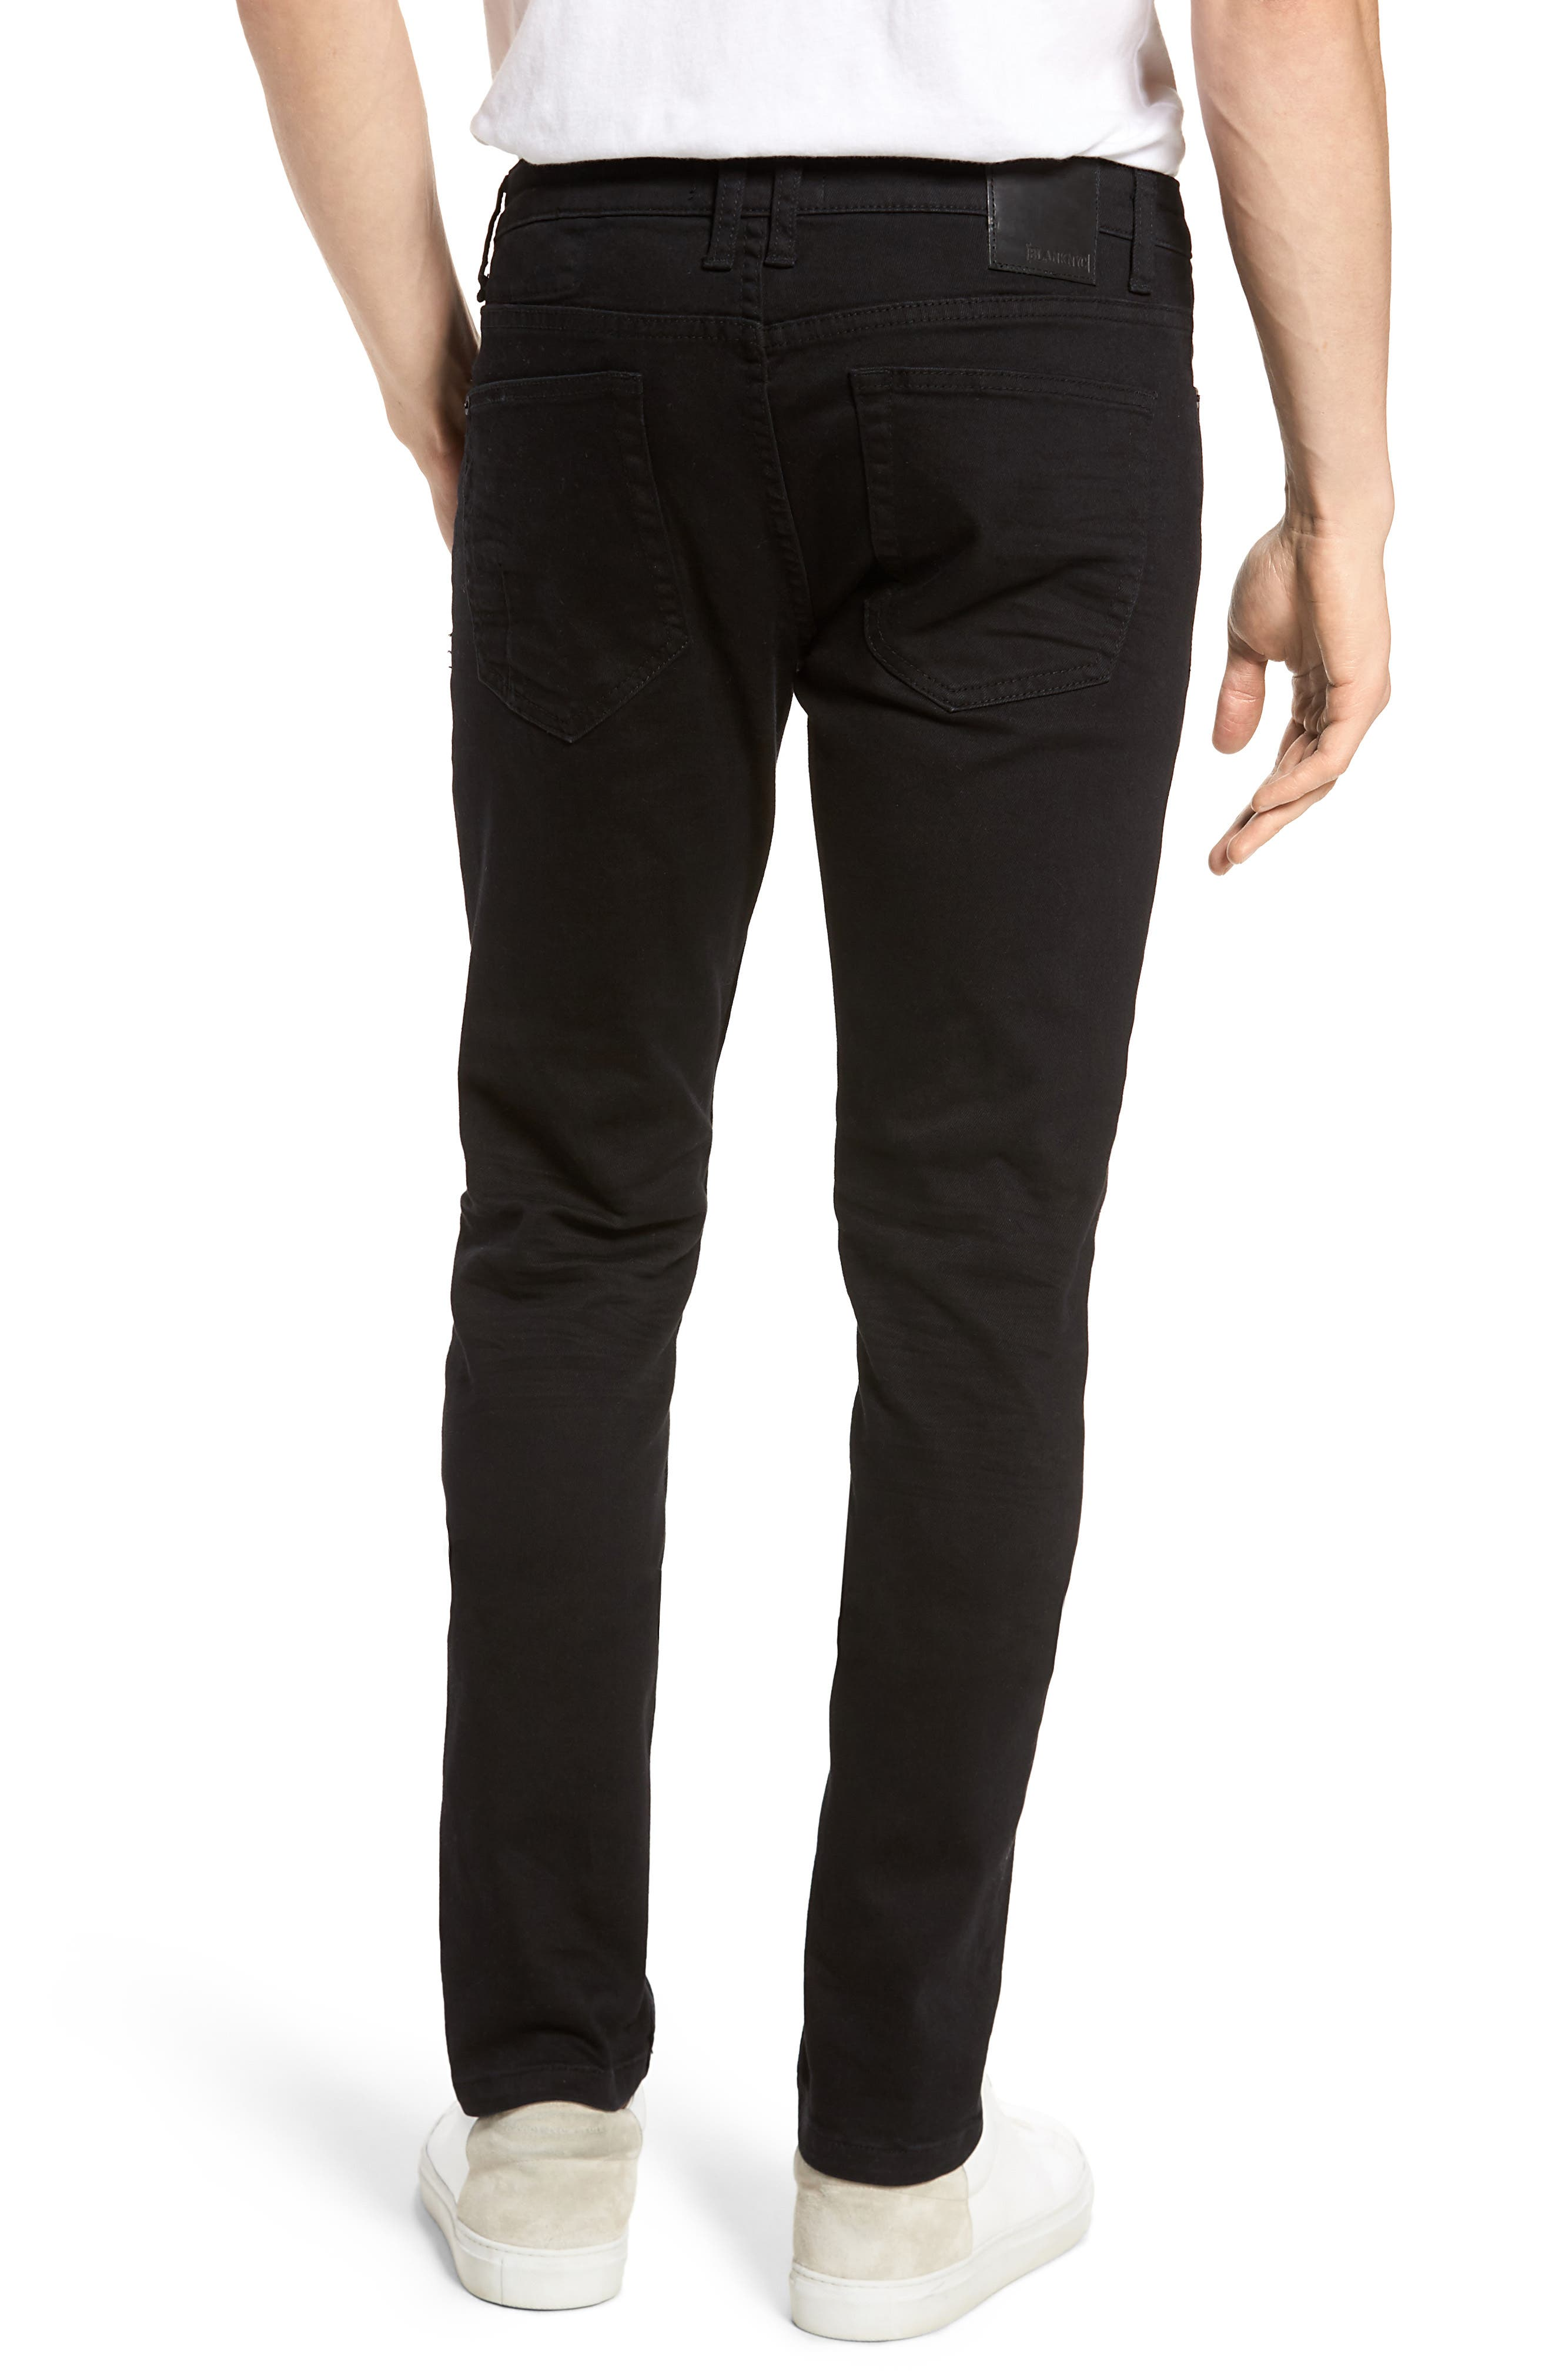 Horatio Skinny Fit Jeans,                             Alternate thumbnail 2, color,                             High Q